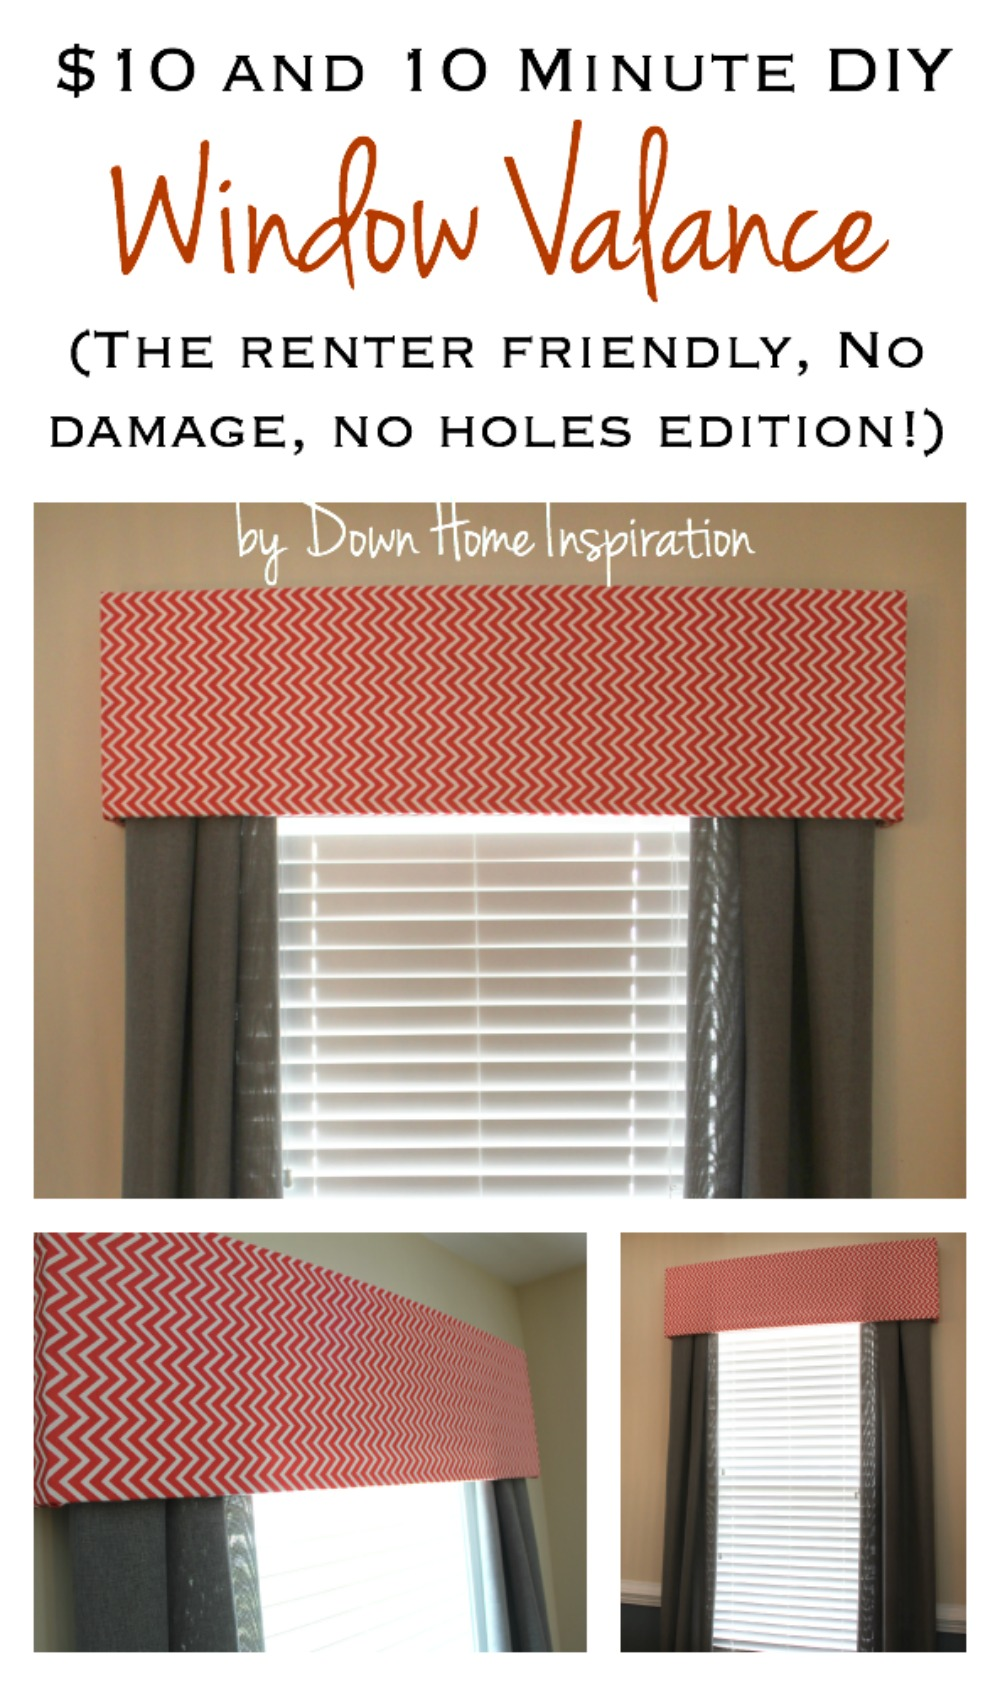 Renter Friendly No Holes No Damage $10 and 10 Minute DIY Window